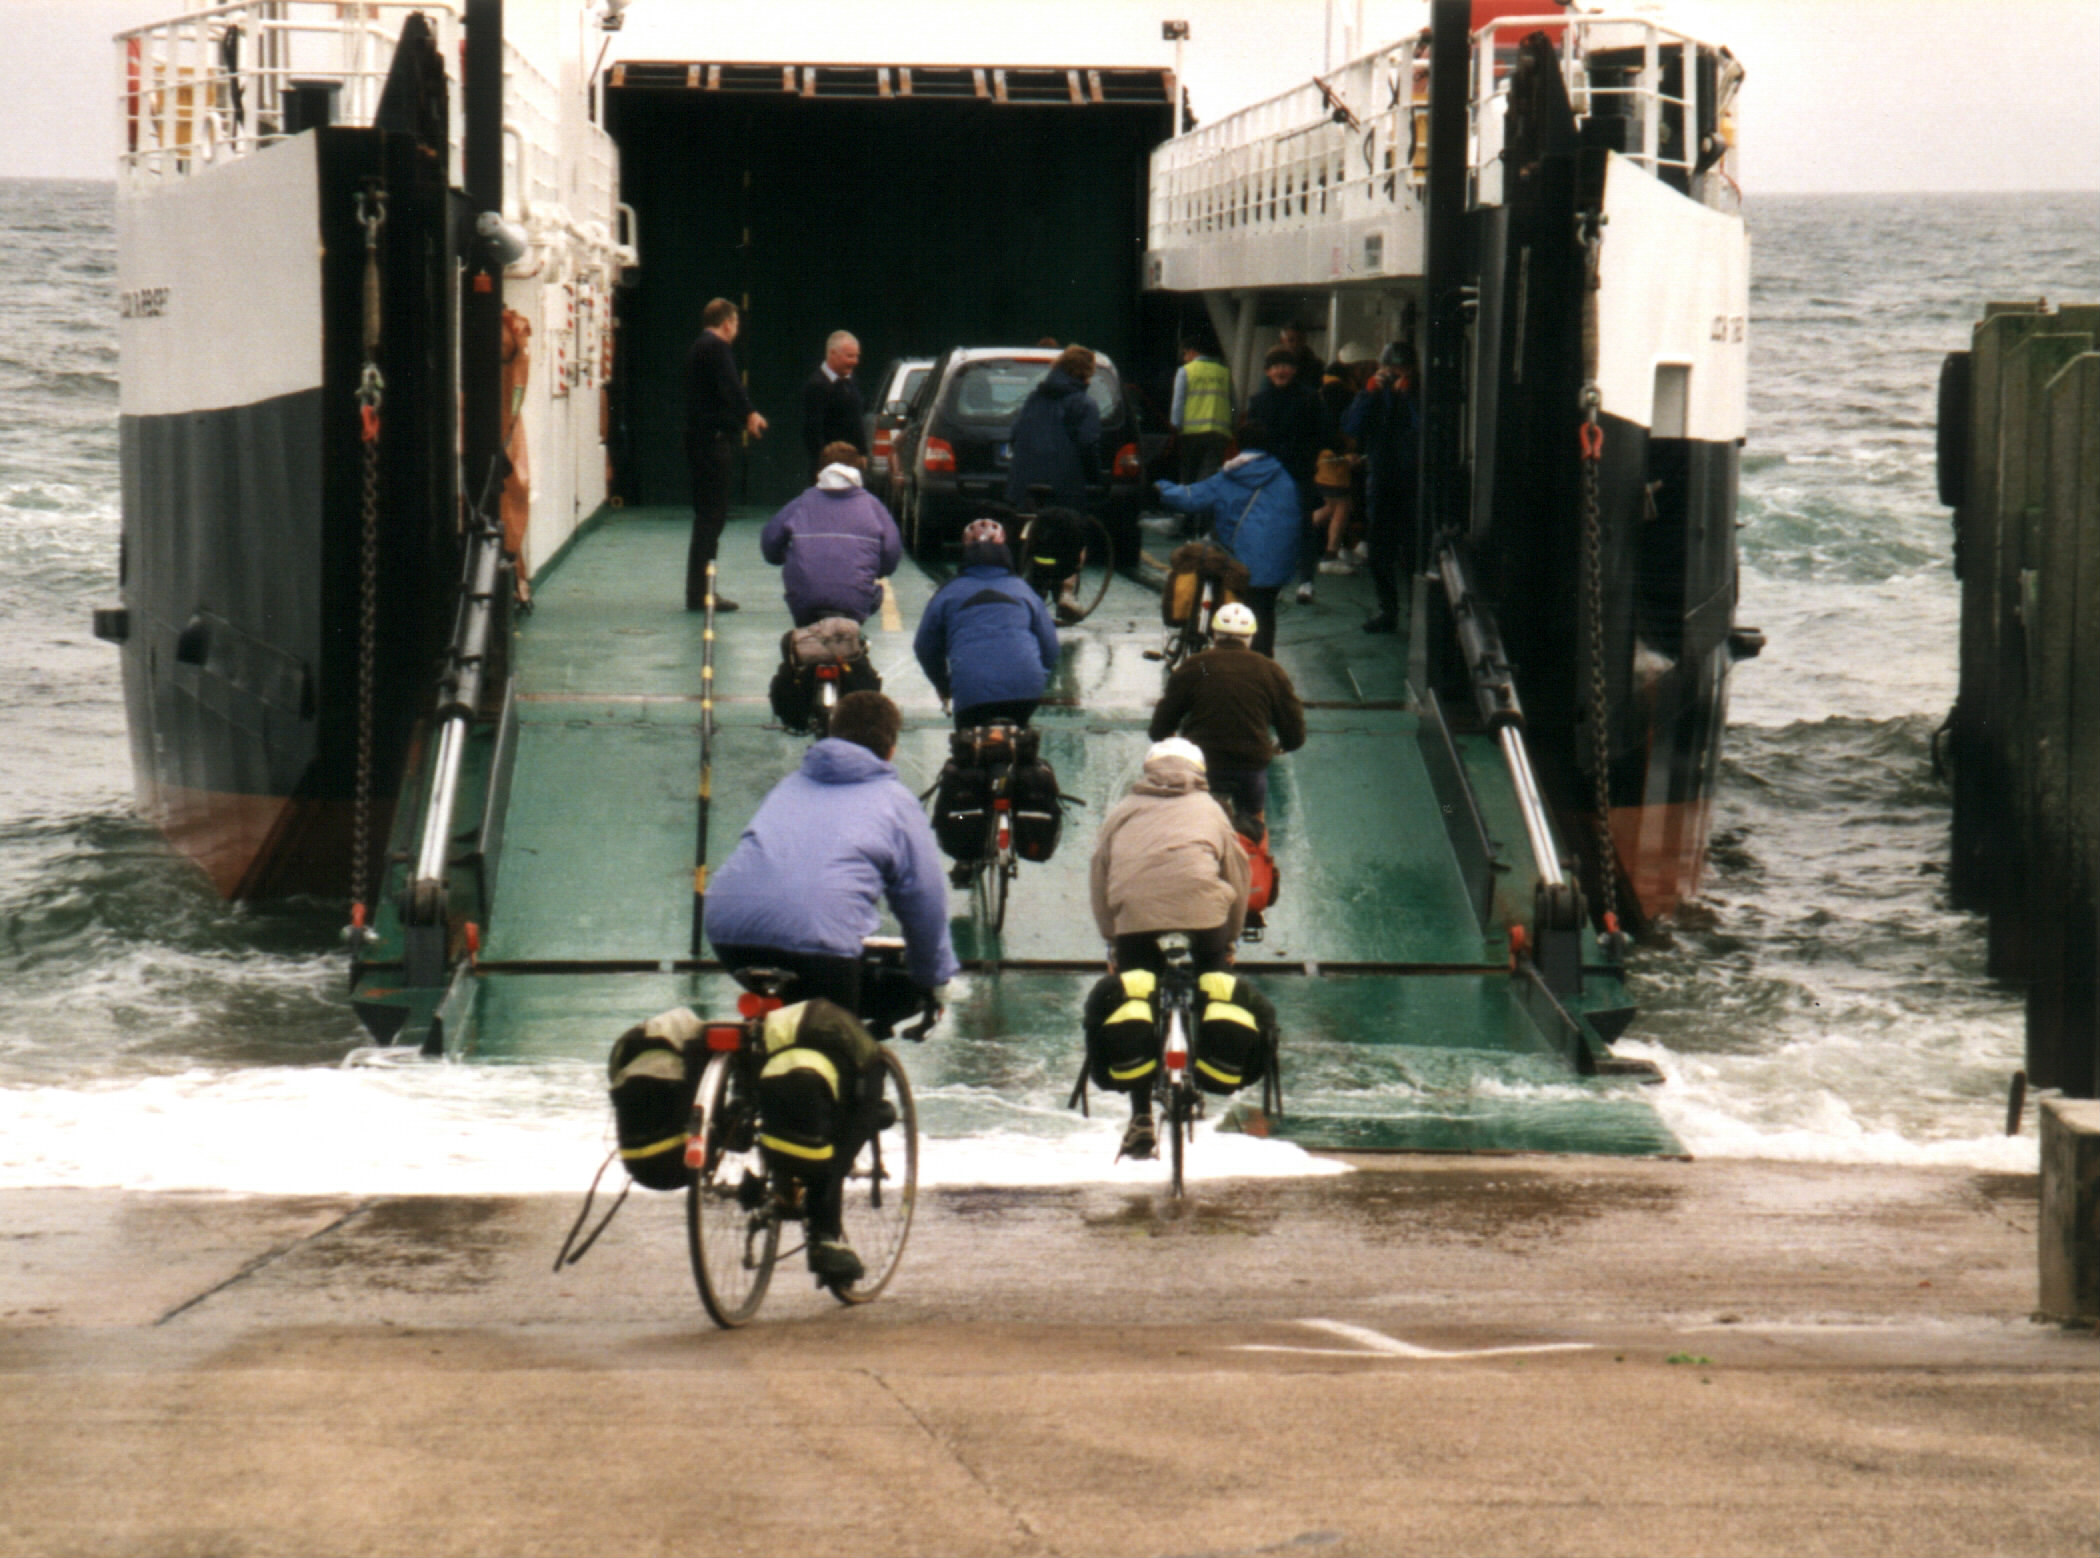 Ferry to Lochranza, Isle of Arran, with a group of Irish cyclists